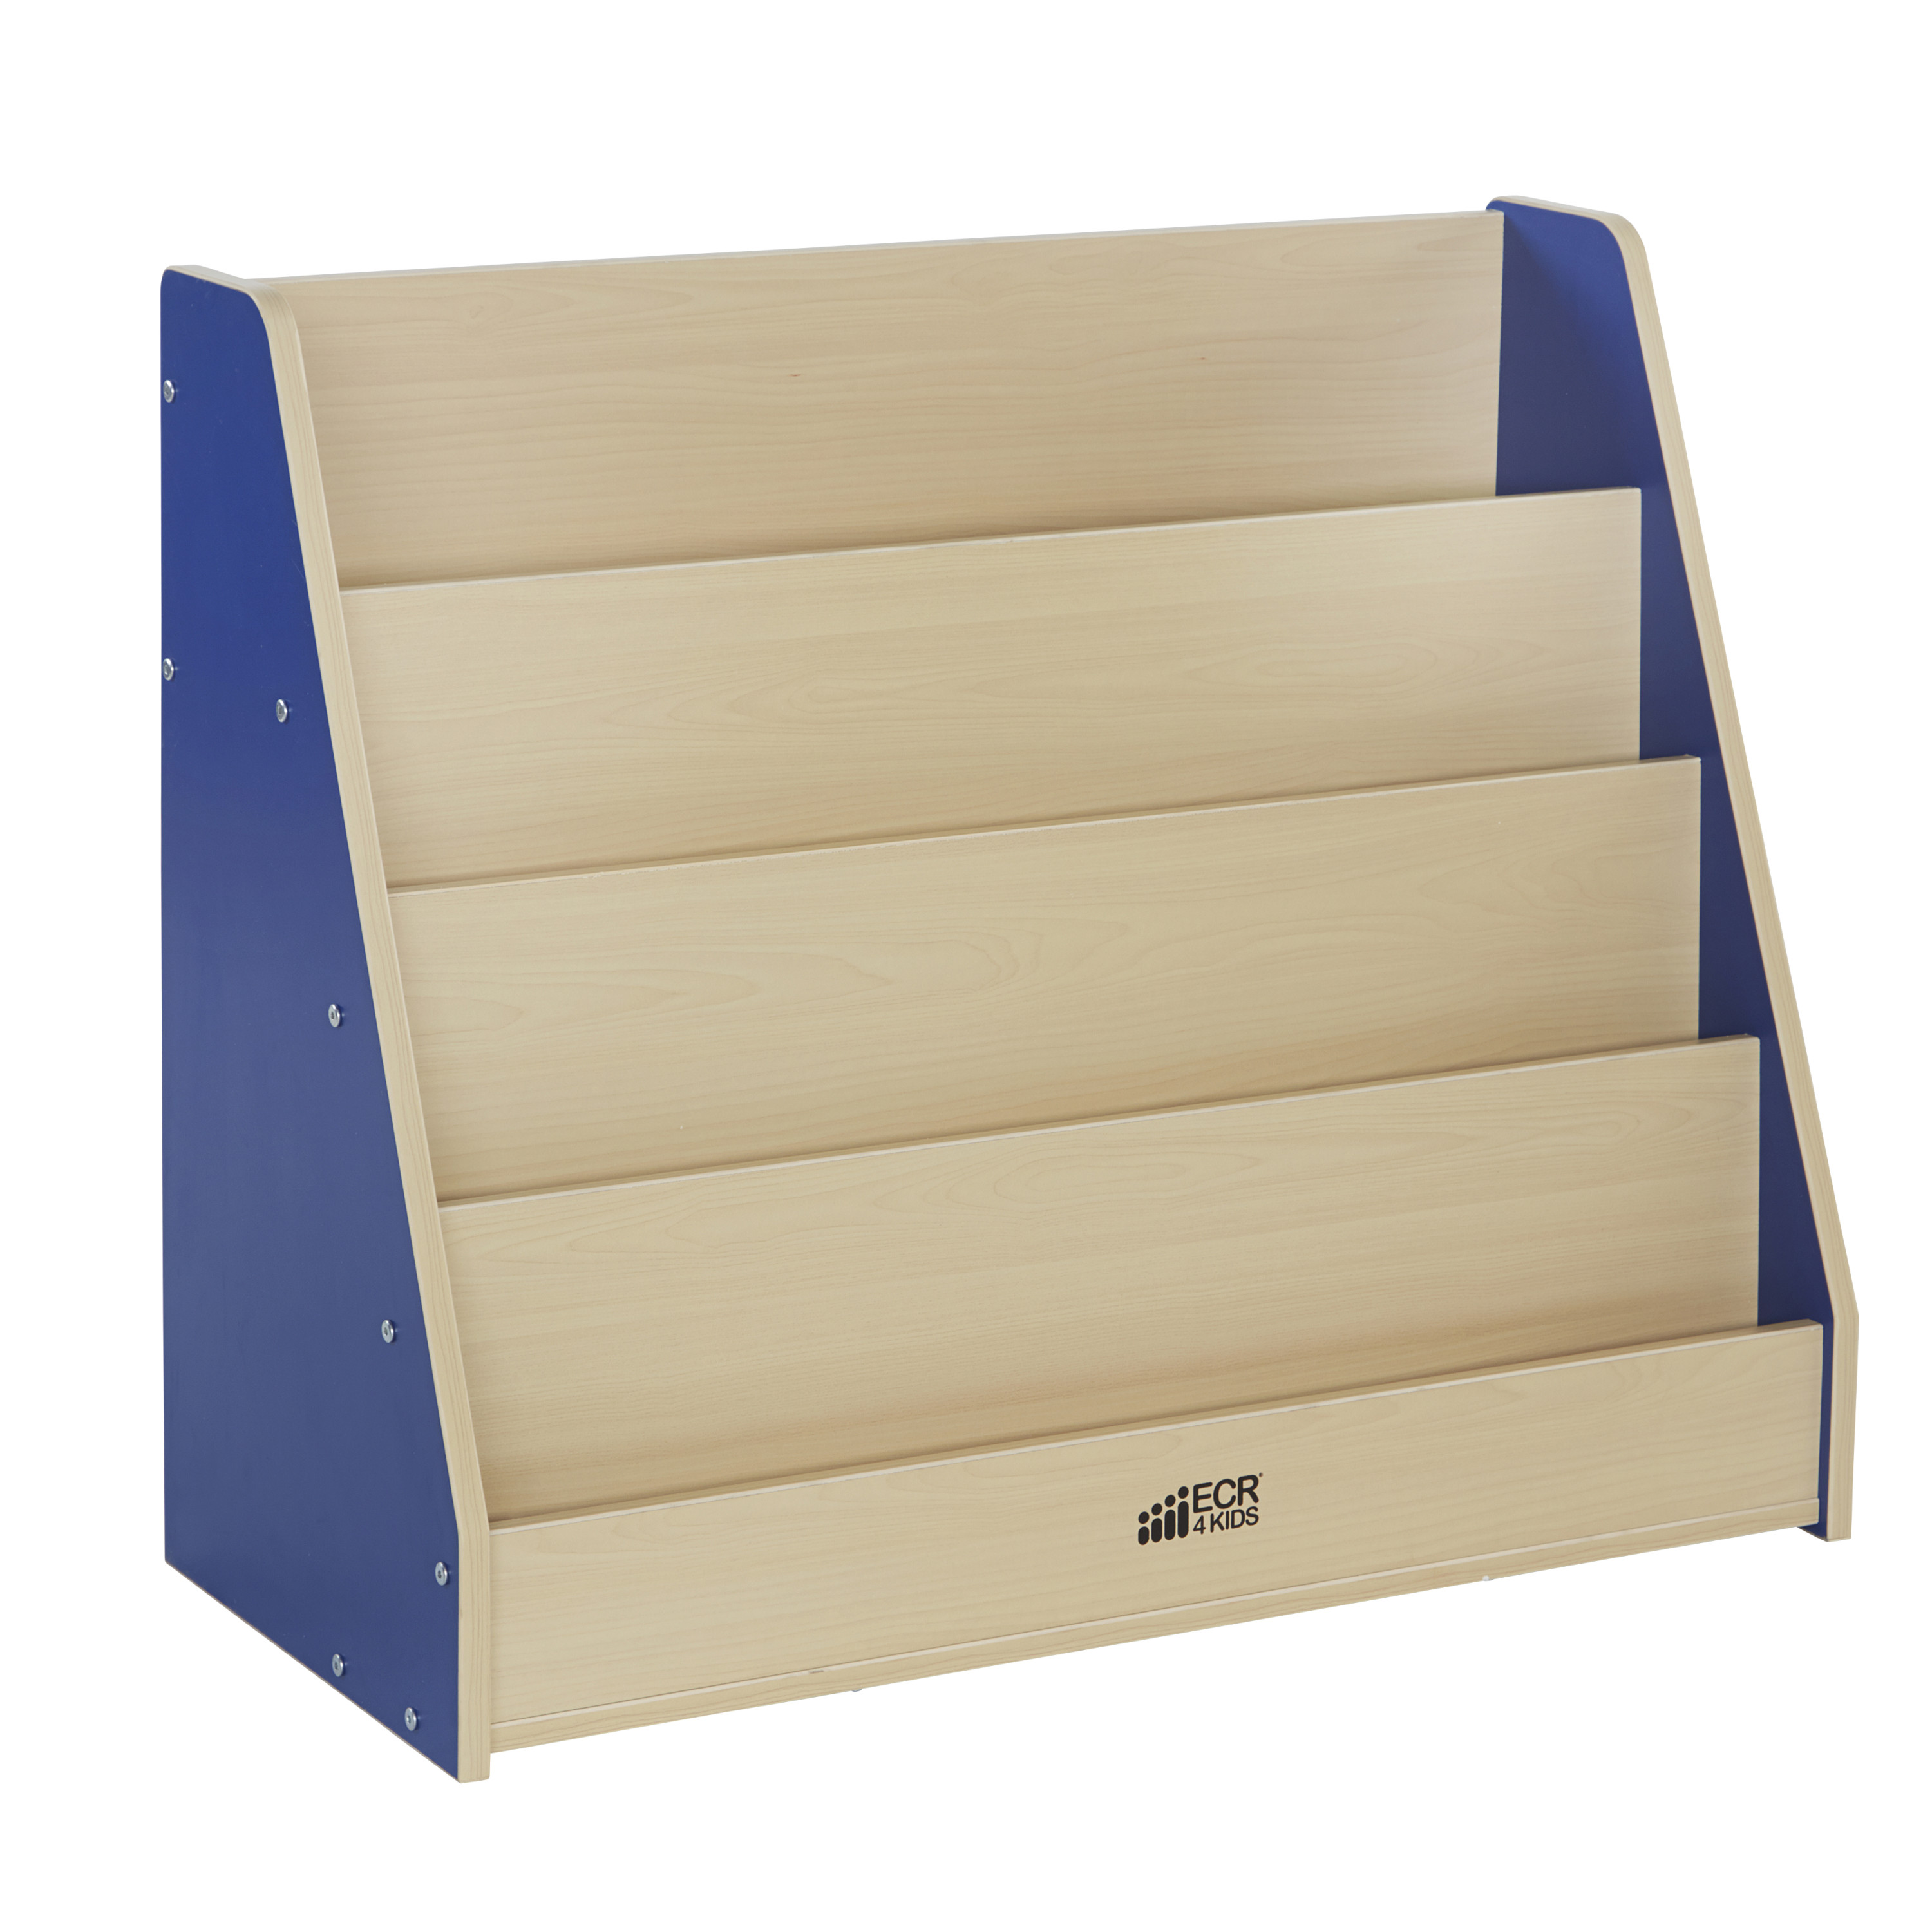 Ecr4Kids Colorful Essentials Kids Bookshelf, 4-Tier, Multiple Colors